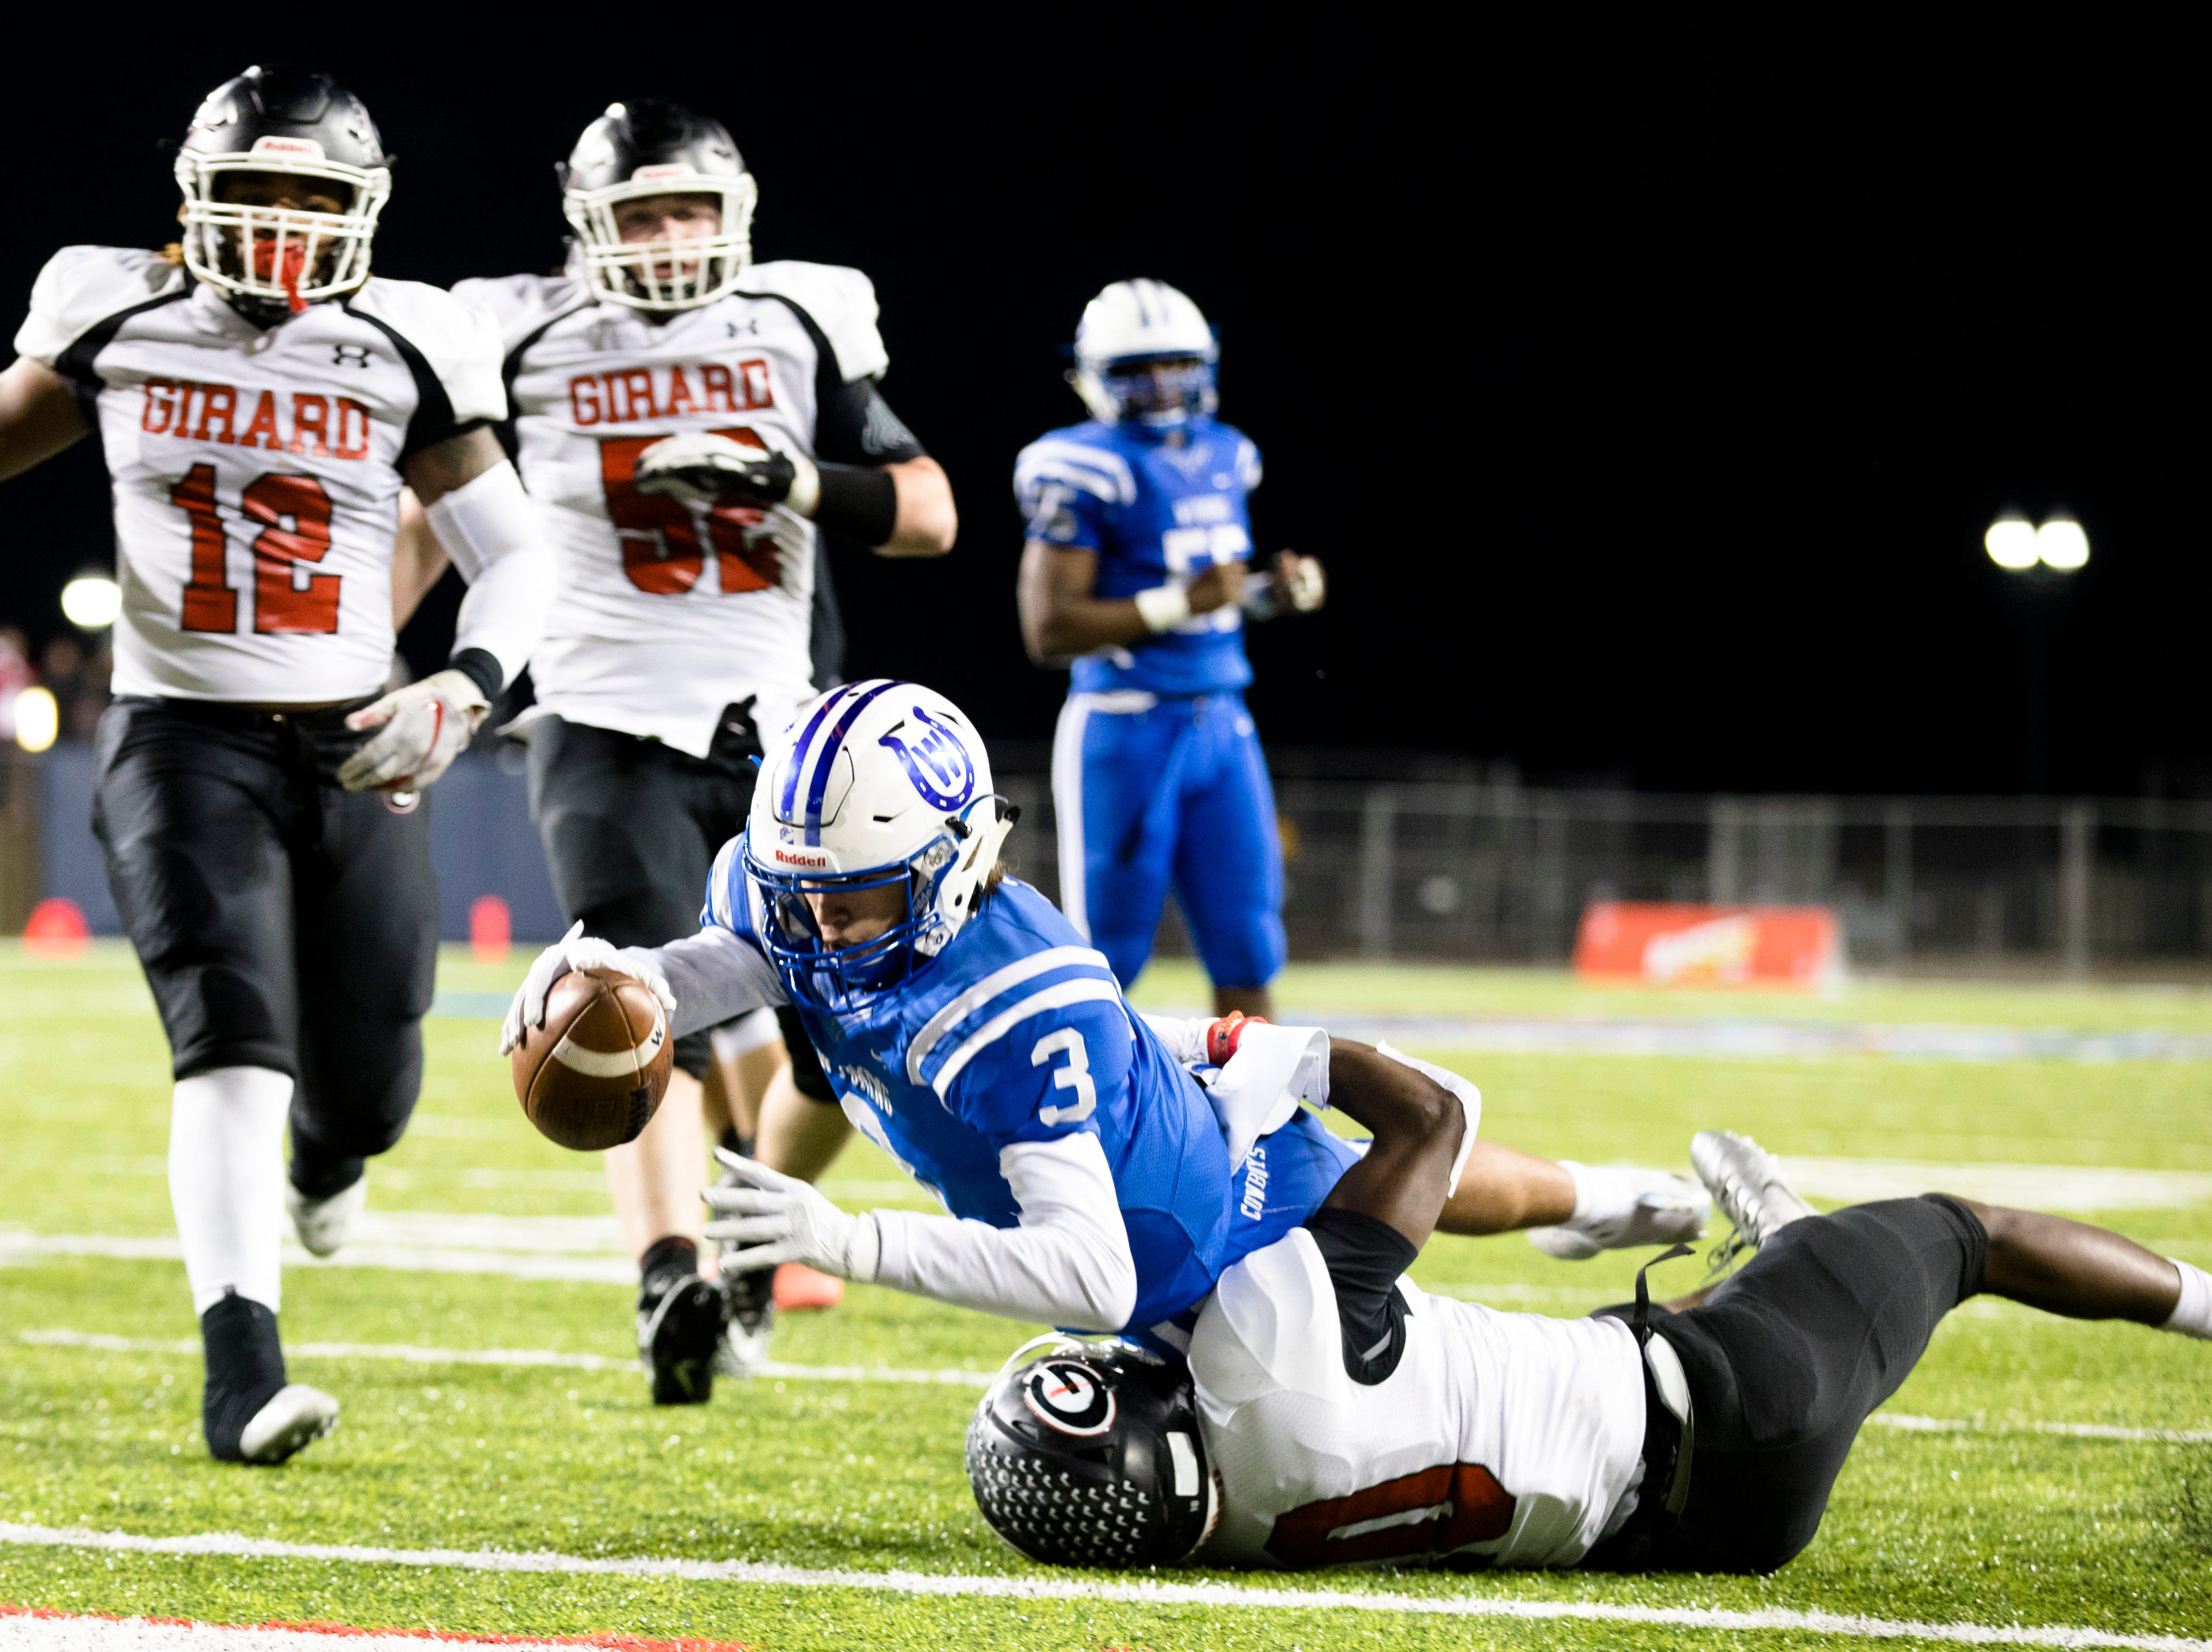 Wyoming's Evan Prater (3) dives over Girard's Jamil Bannister (10) into the end zone for a touchdown during the first half of the OHSAA Division IV State Championship football game between Wyoming and Girard on Saturday, Dec. 1, 2018, at Tom Benson Stadium in Canton.